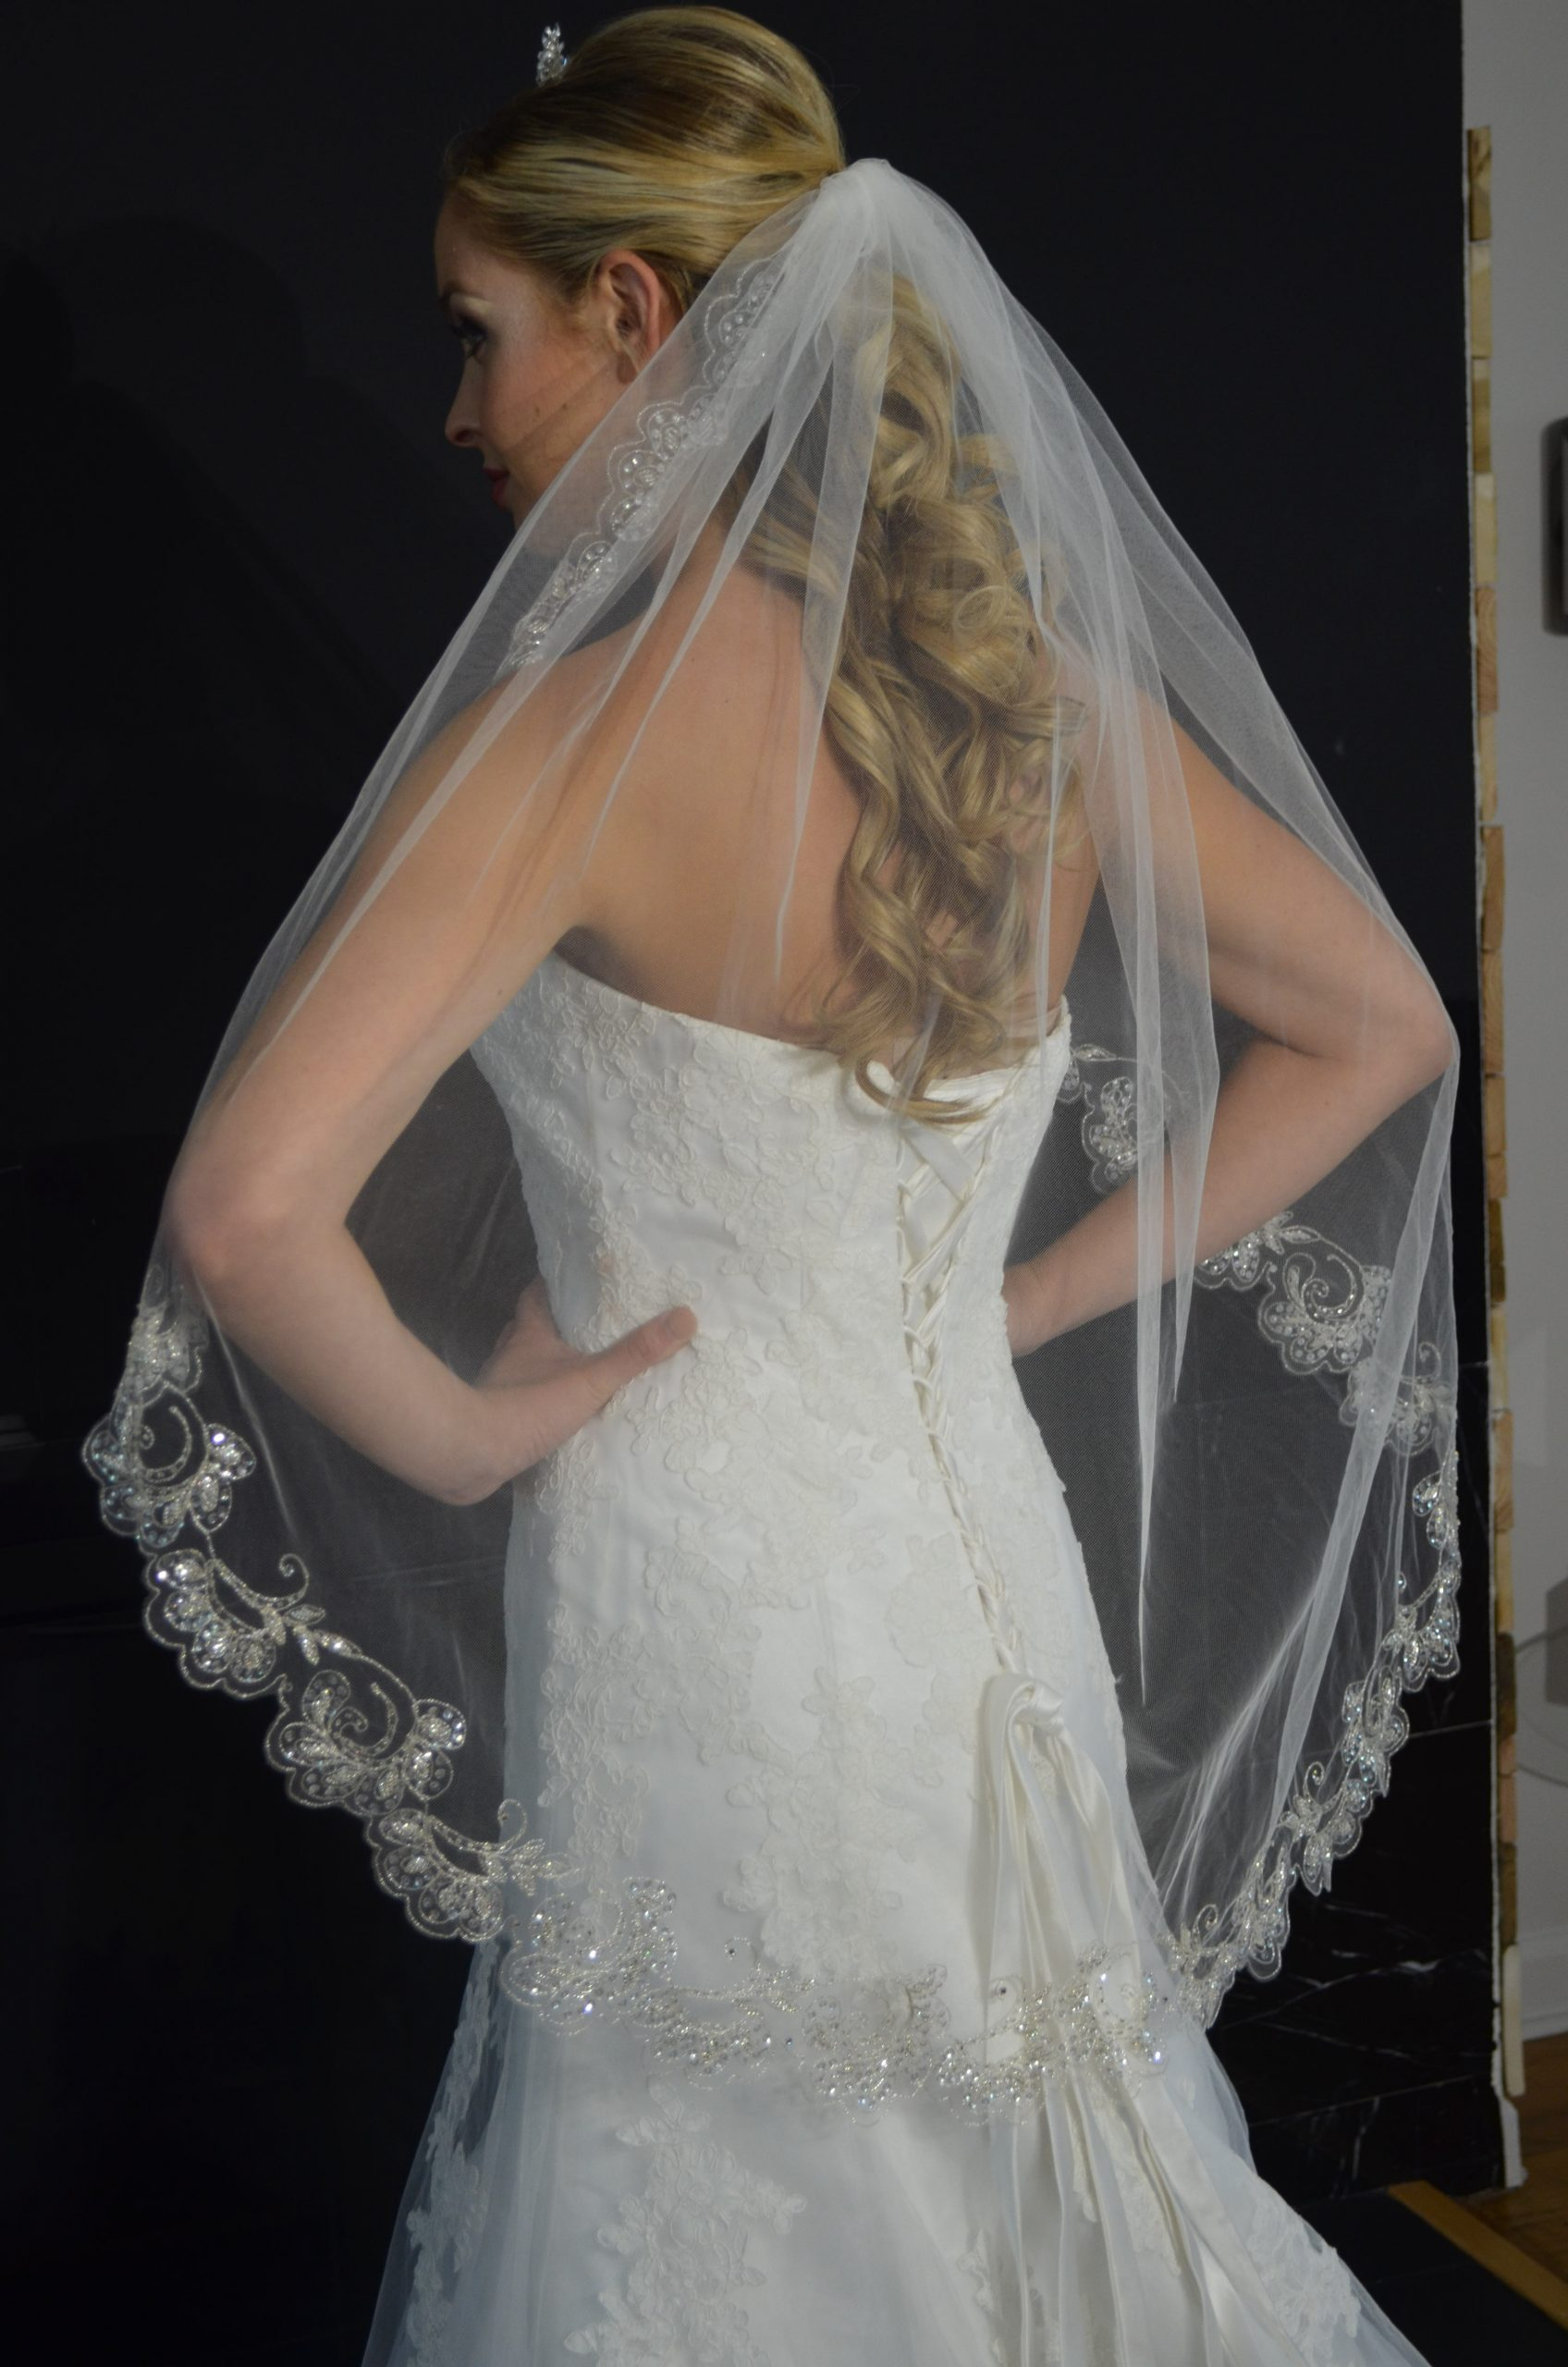 Elena E1213 One tier fingertip veil with silver embroidered scallop edge with beading & sequins.